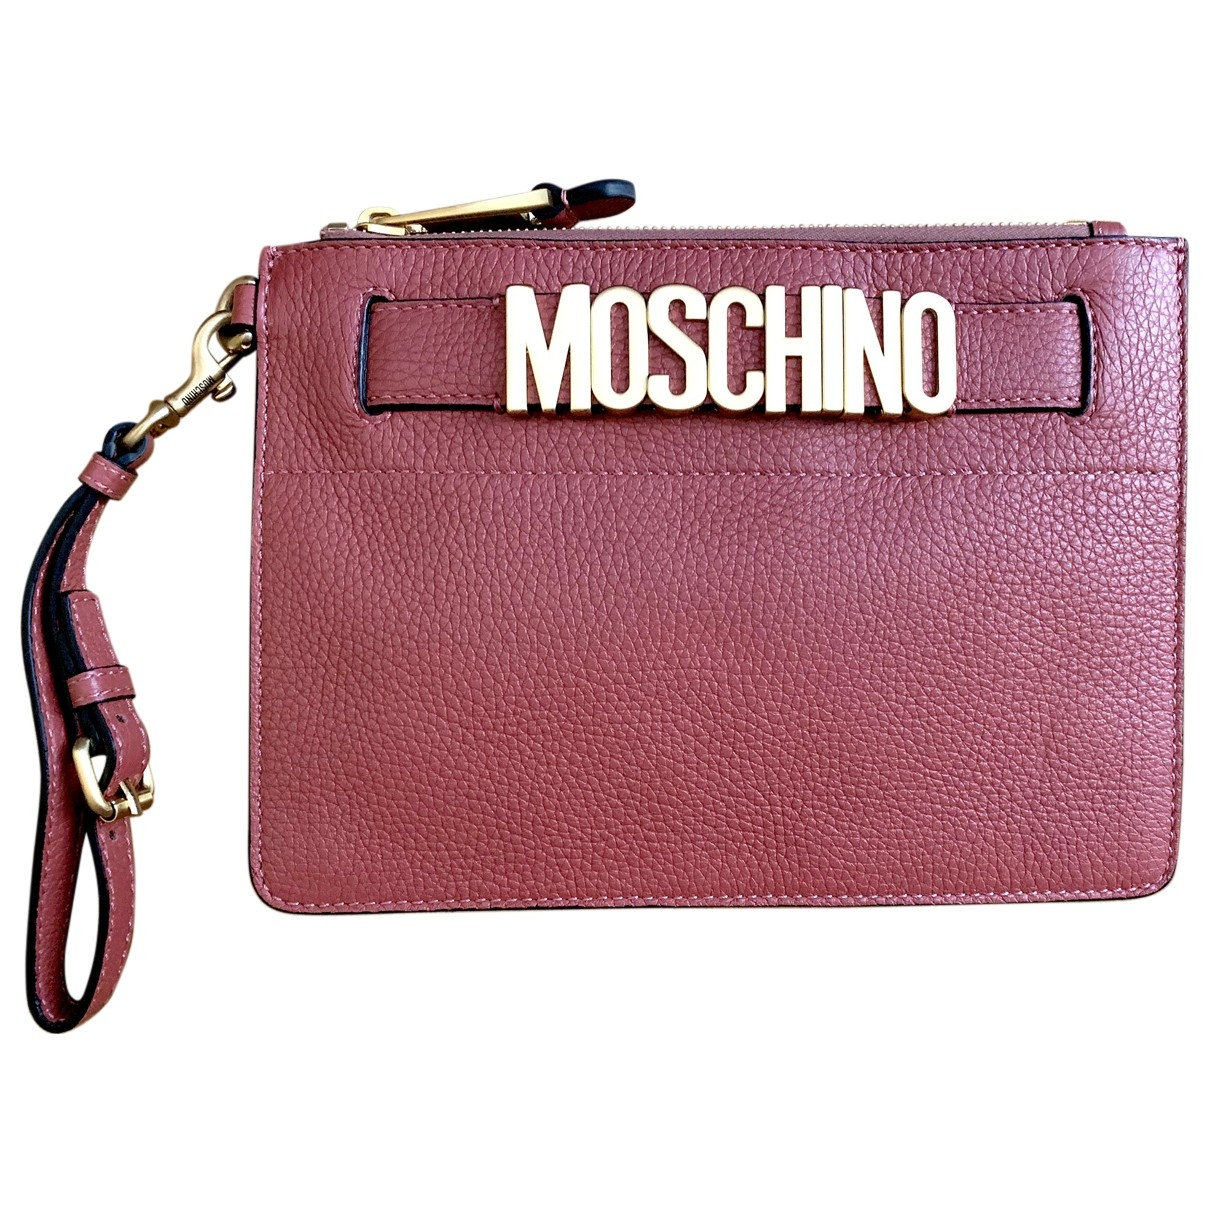 Moschino \N Pink Leather Clutch bag for Women \N